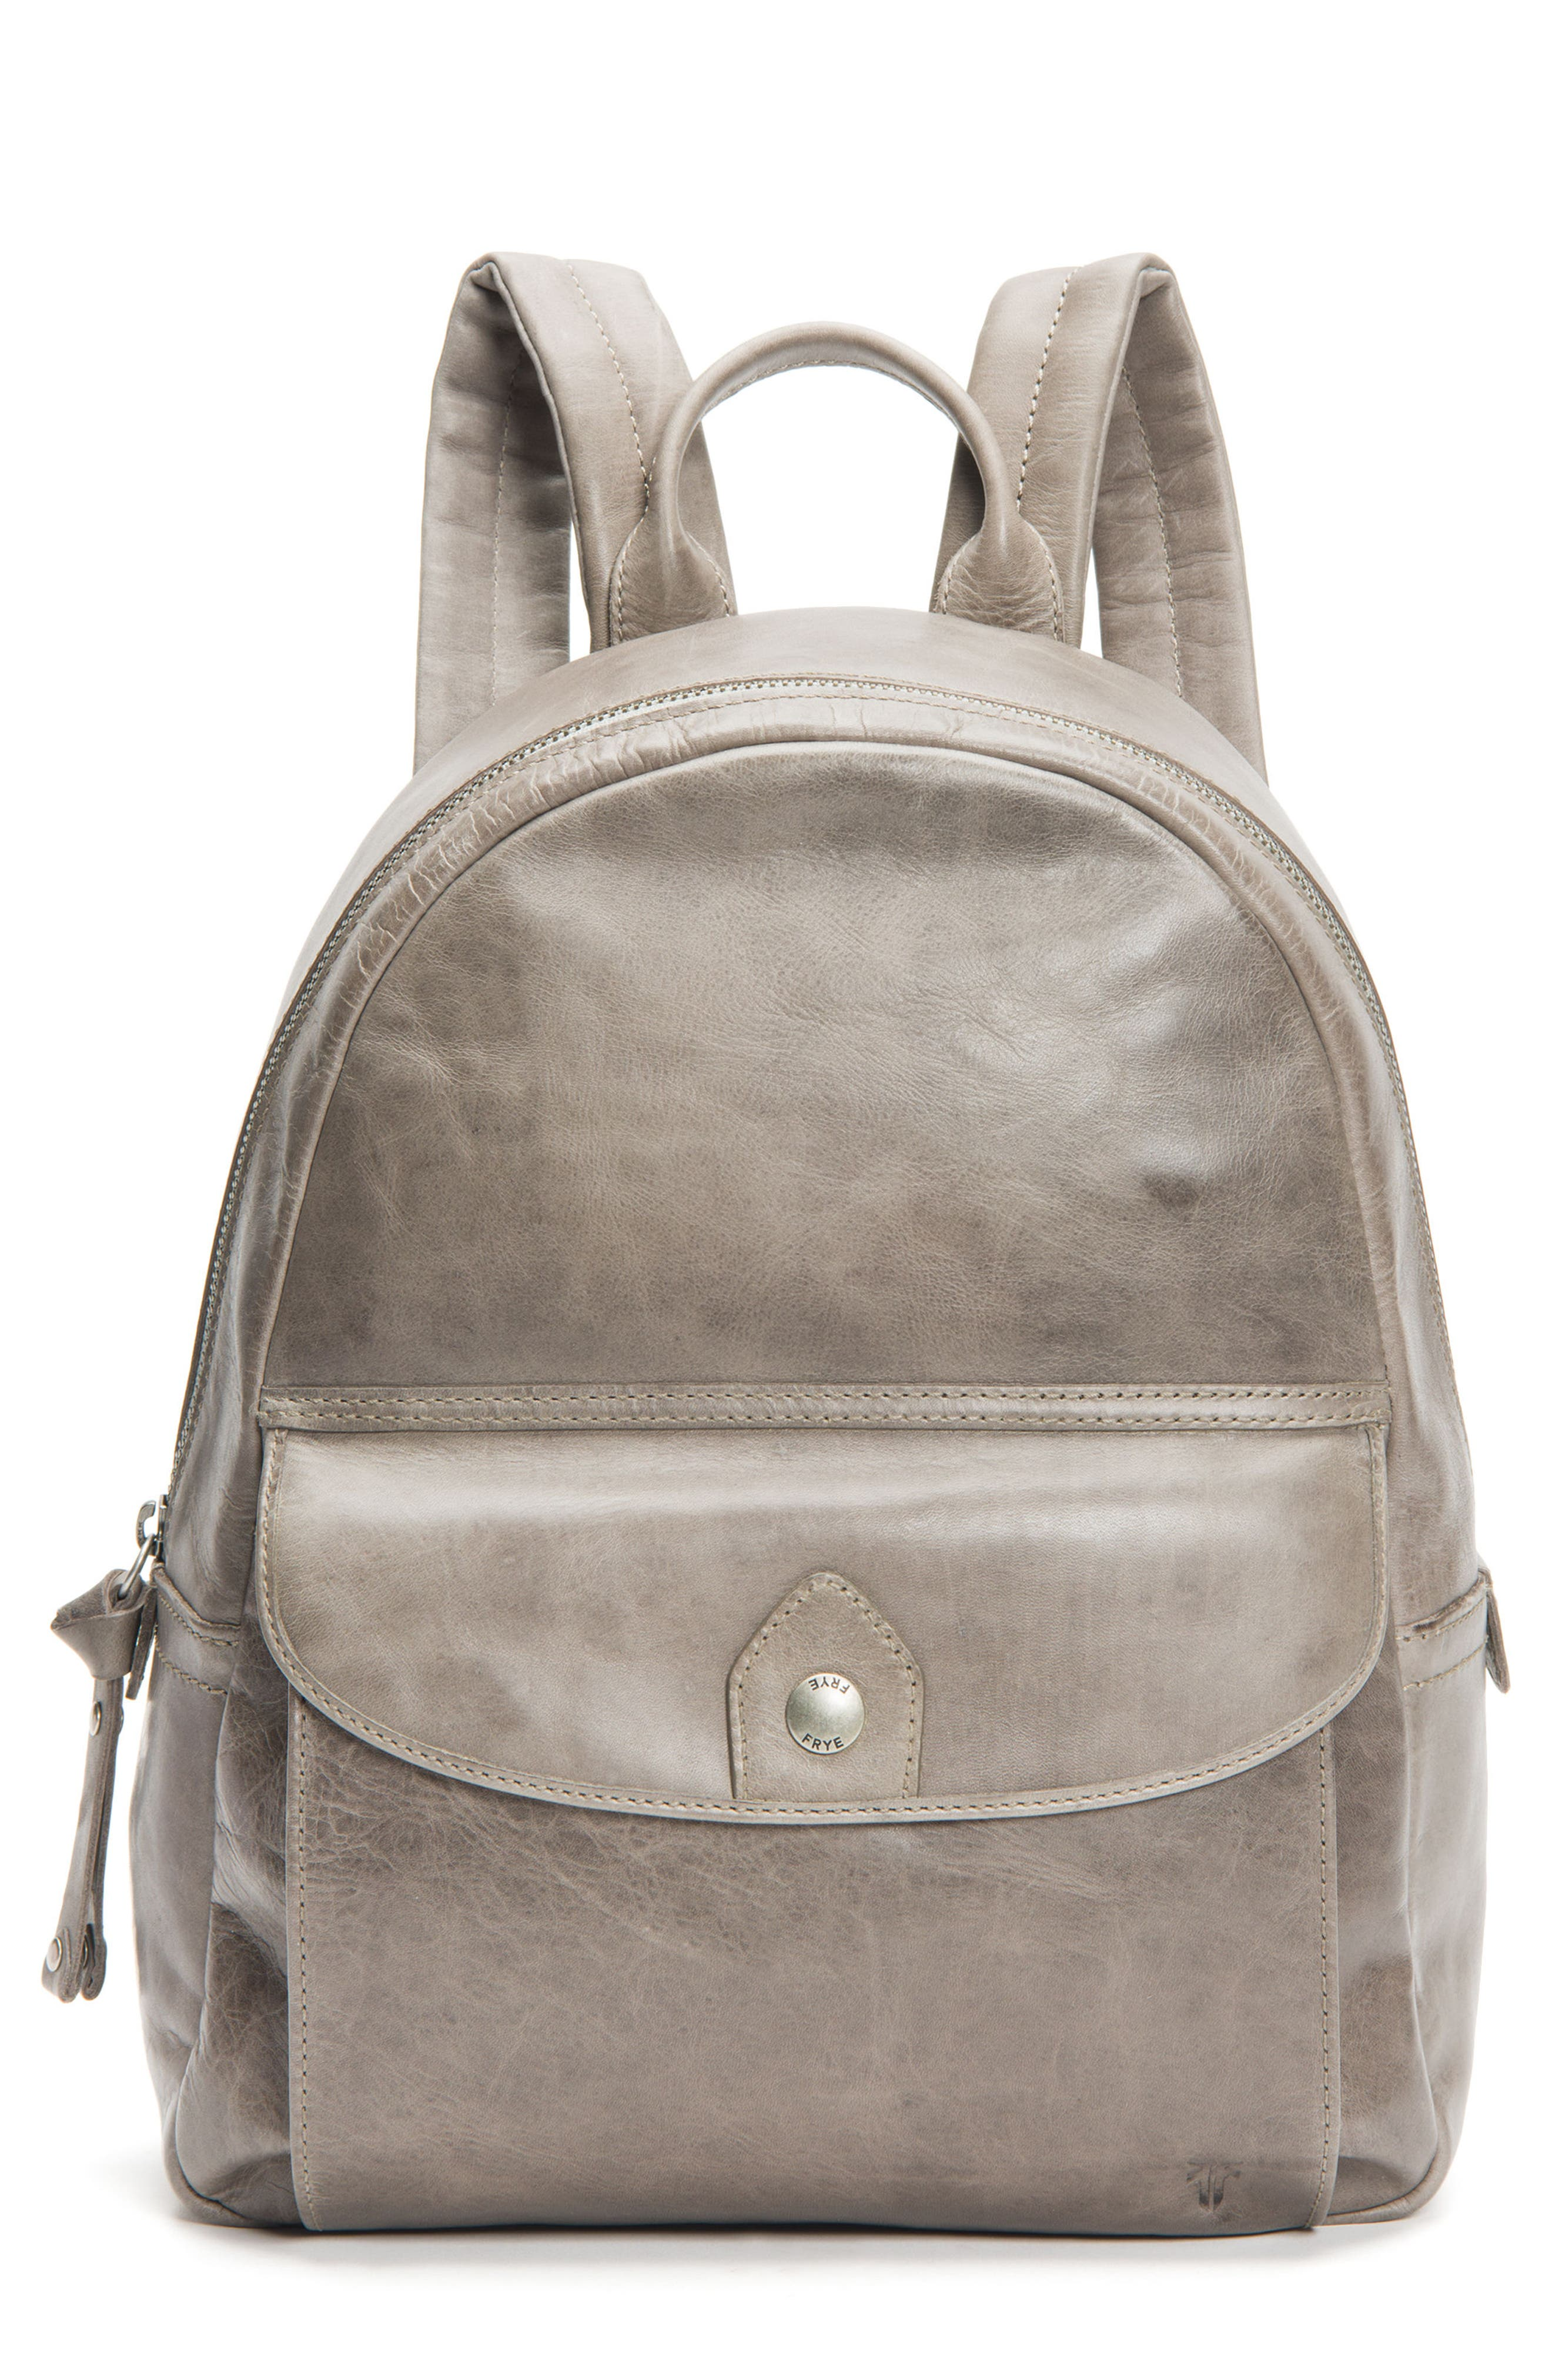 Melissa Leather Backpack,                             Main thumbnail 1, color,                             020